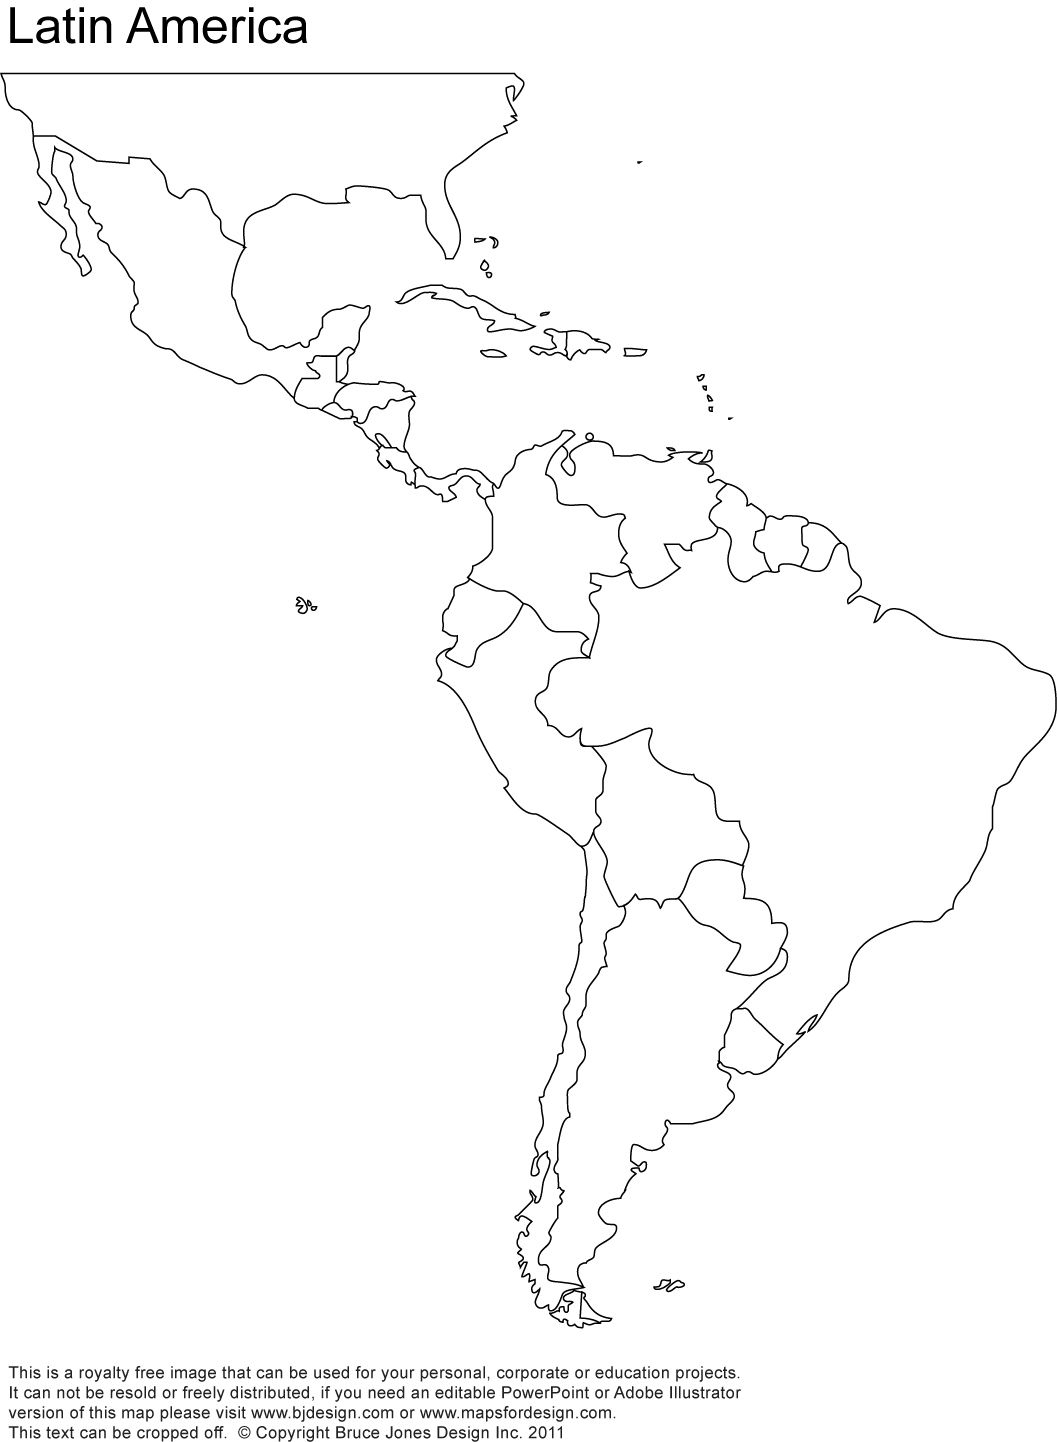 Free Blank Map Of North And South America | Latin America Printable - Blank Map Of Latin America Printable